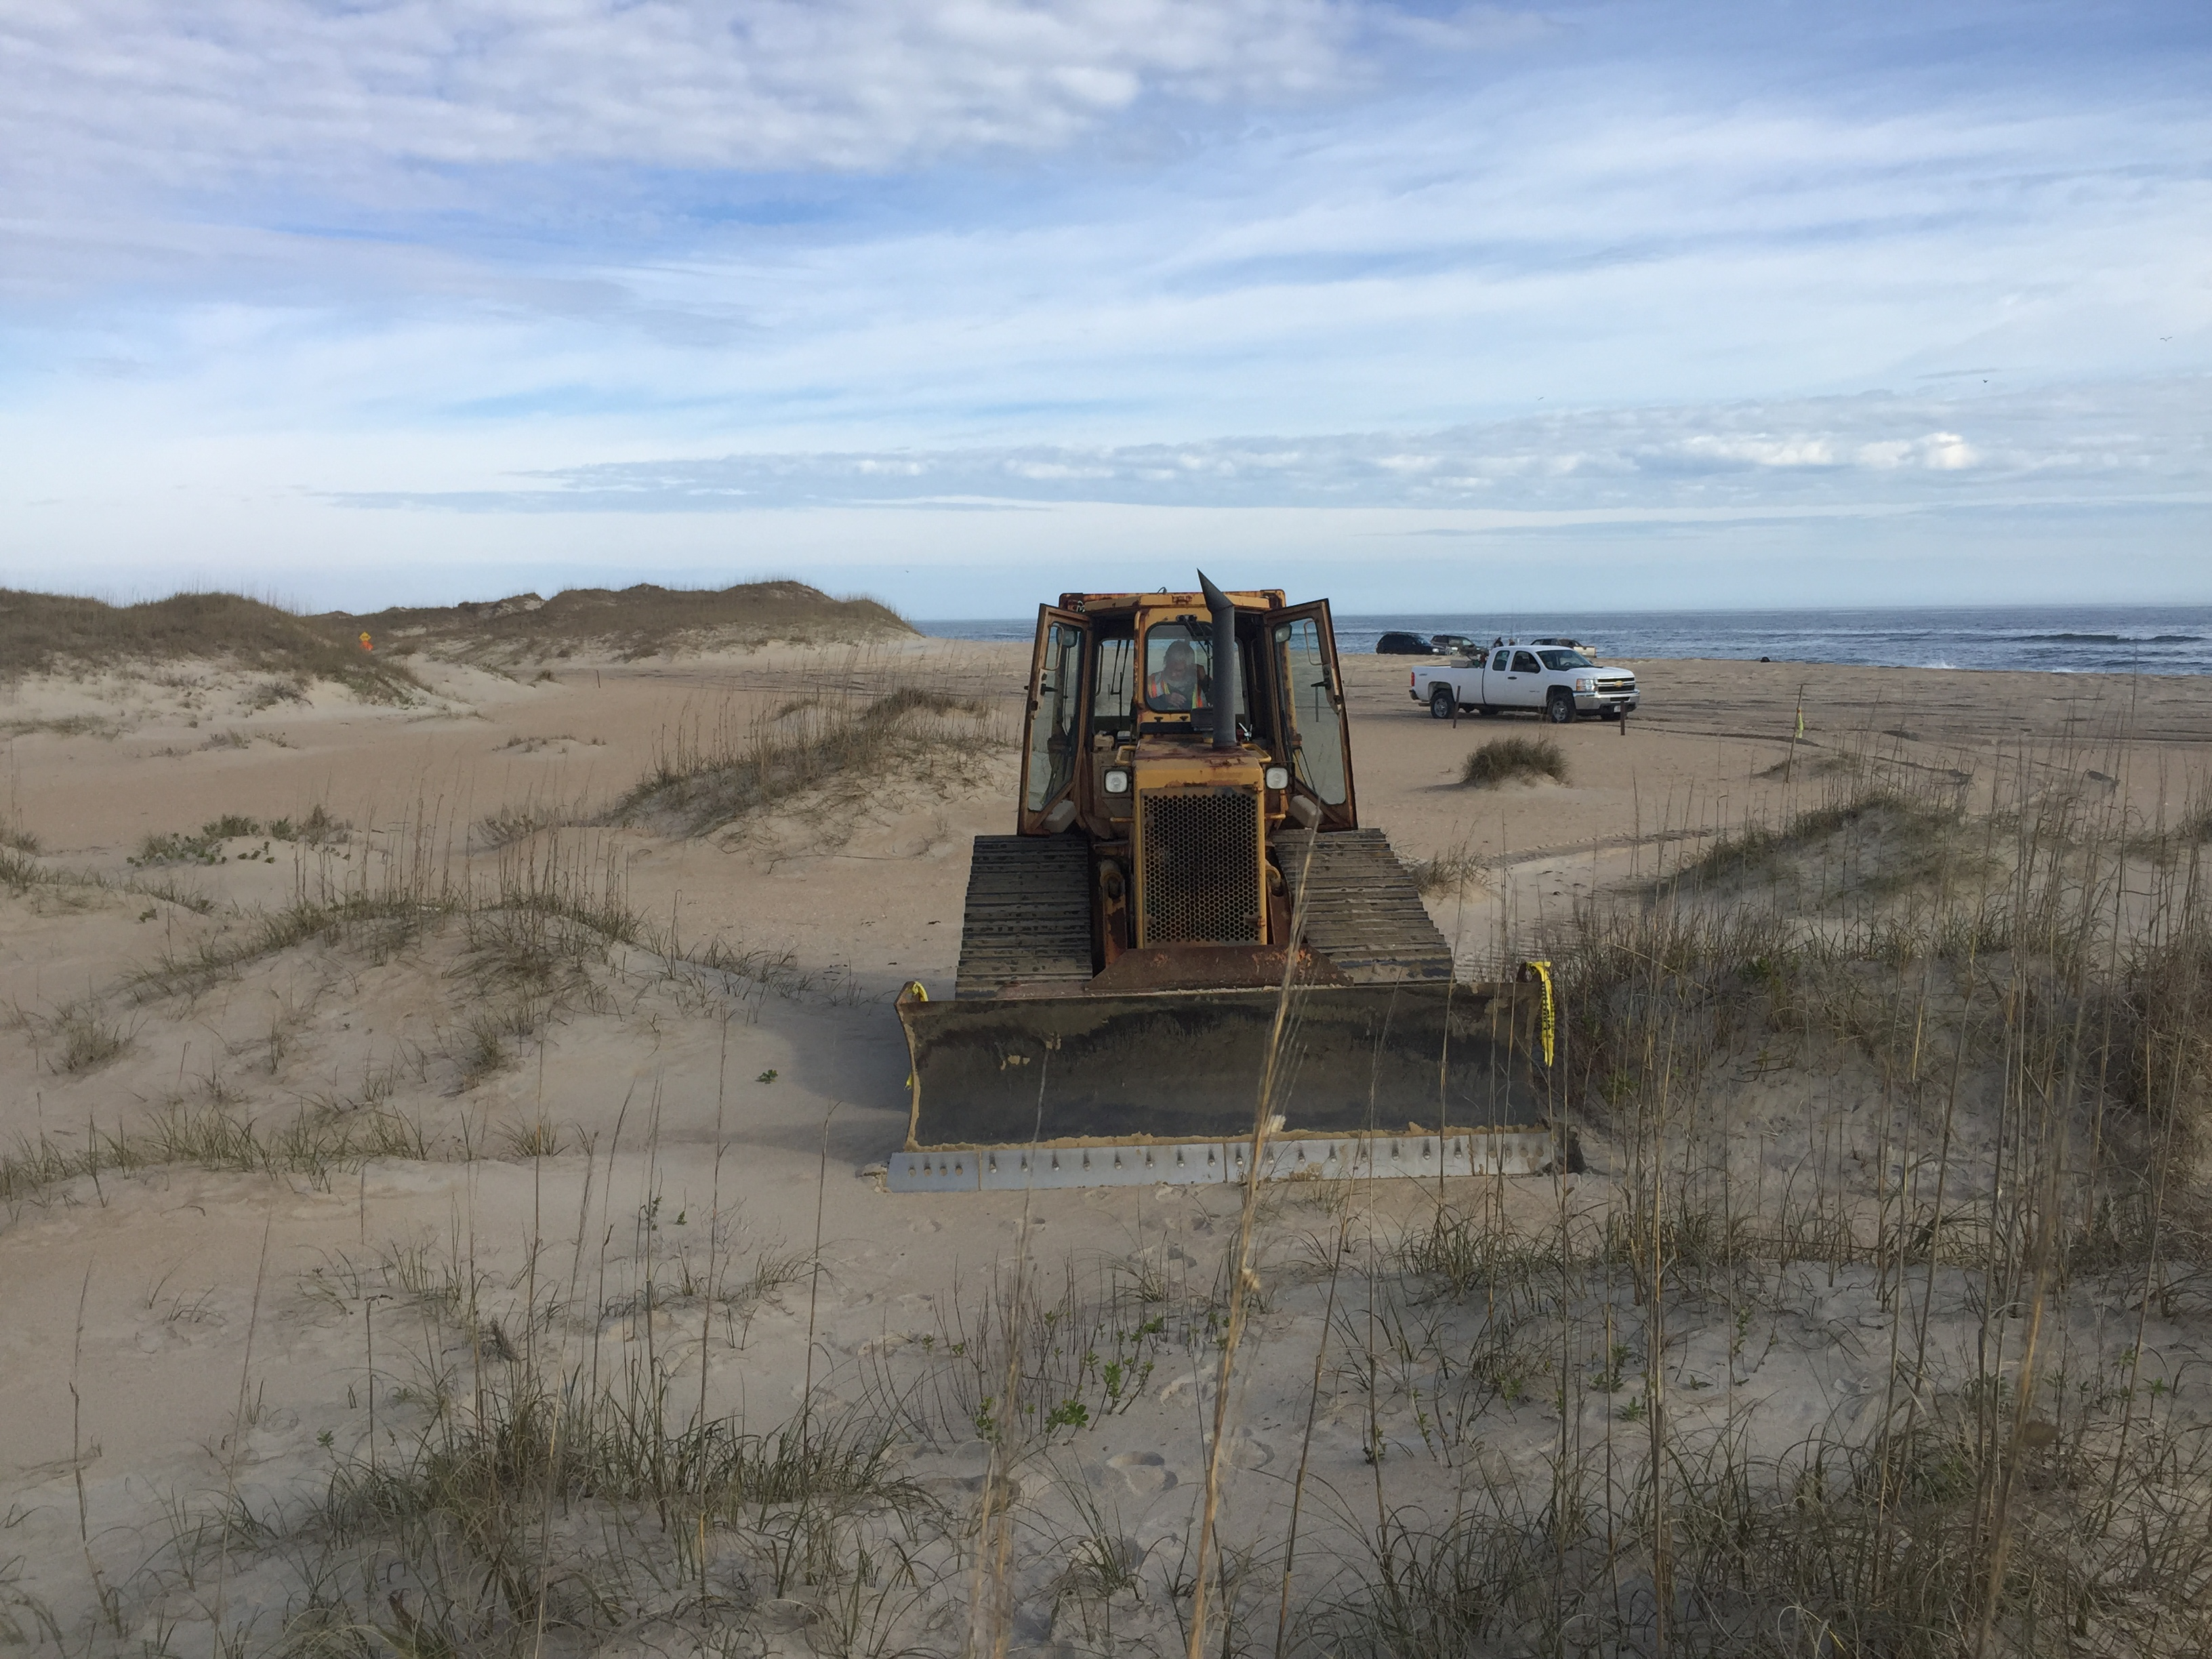 Bulldozer beginning work on Cape Point bypass extension. Park Ranger vehicle and Atlantic Ocean in background.